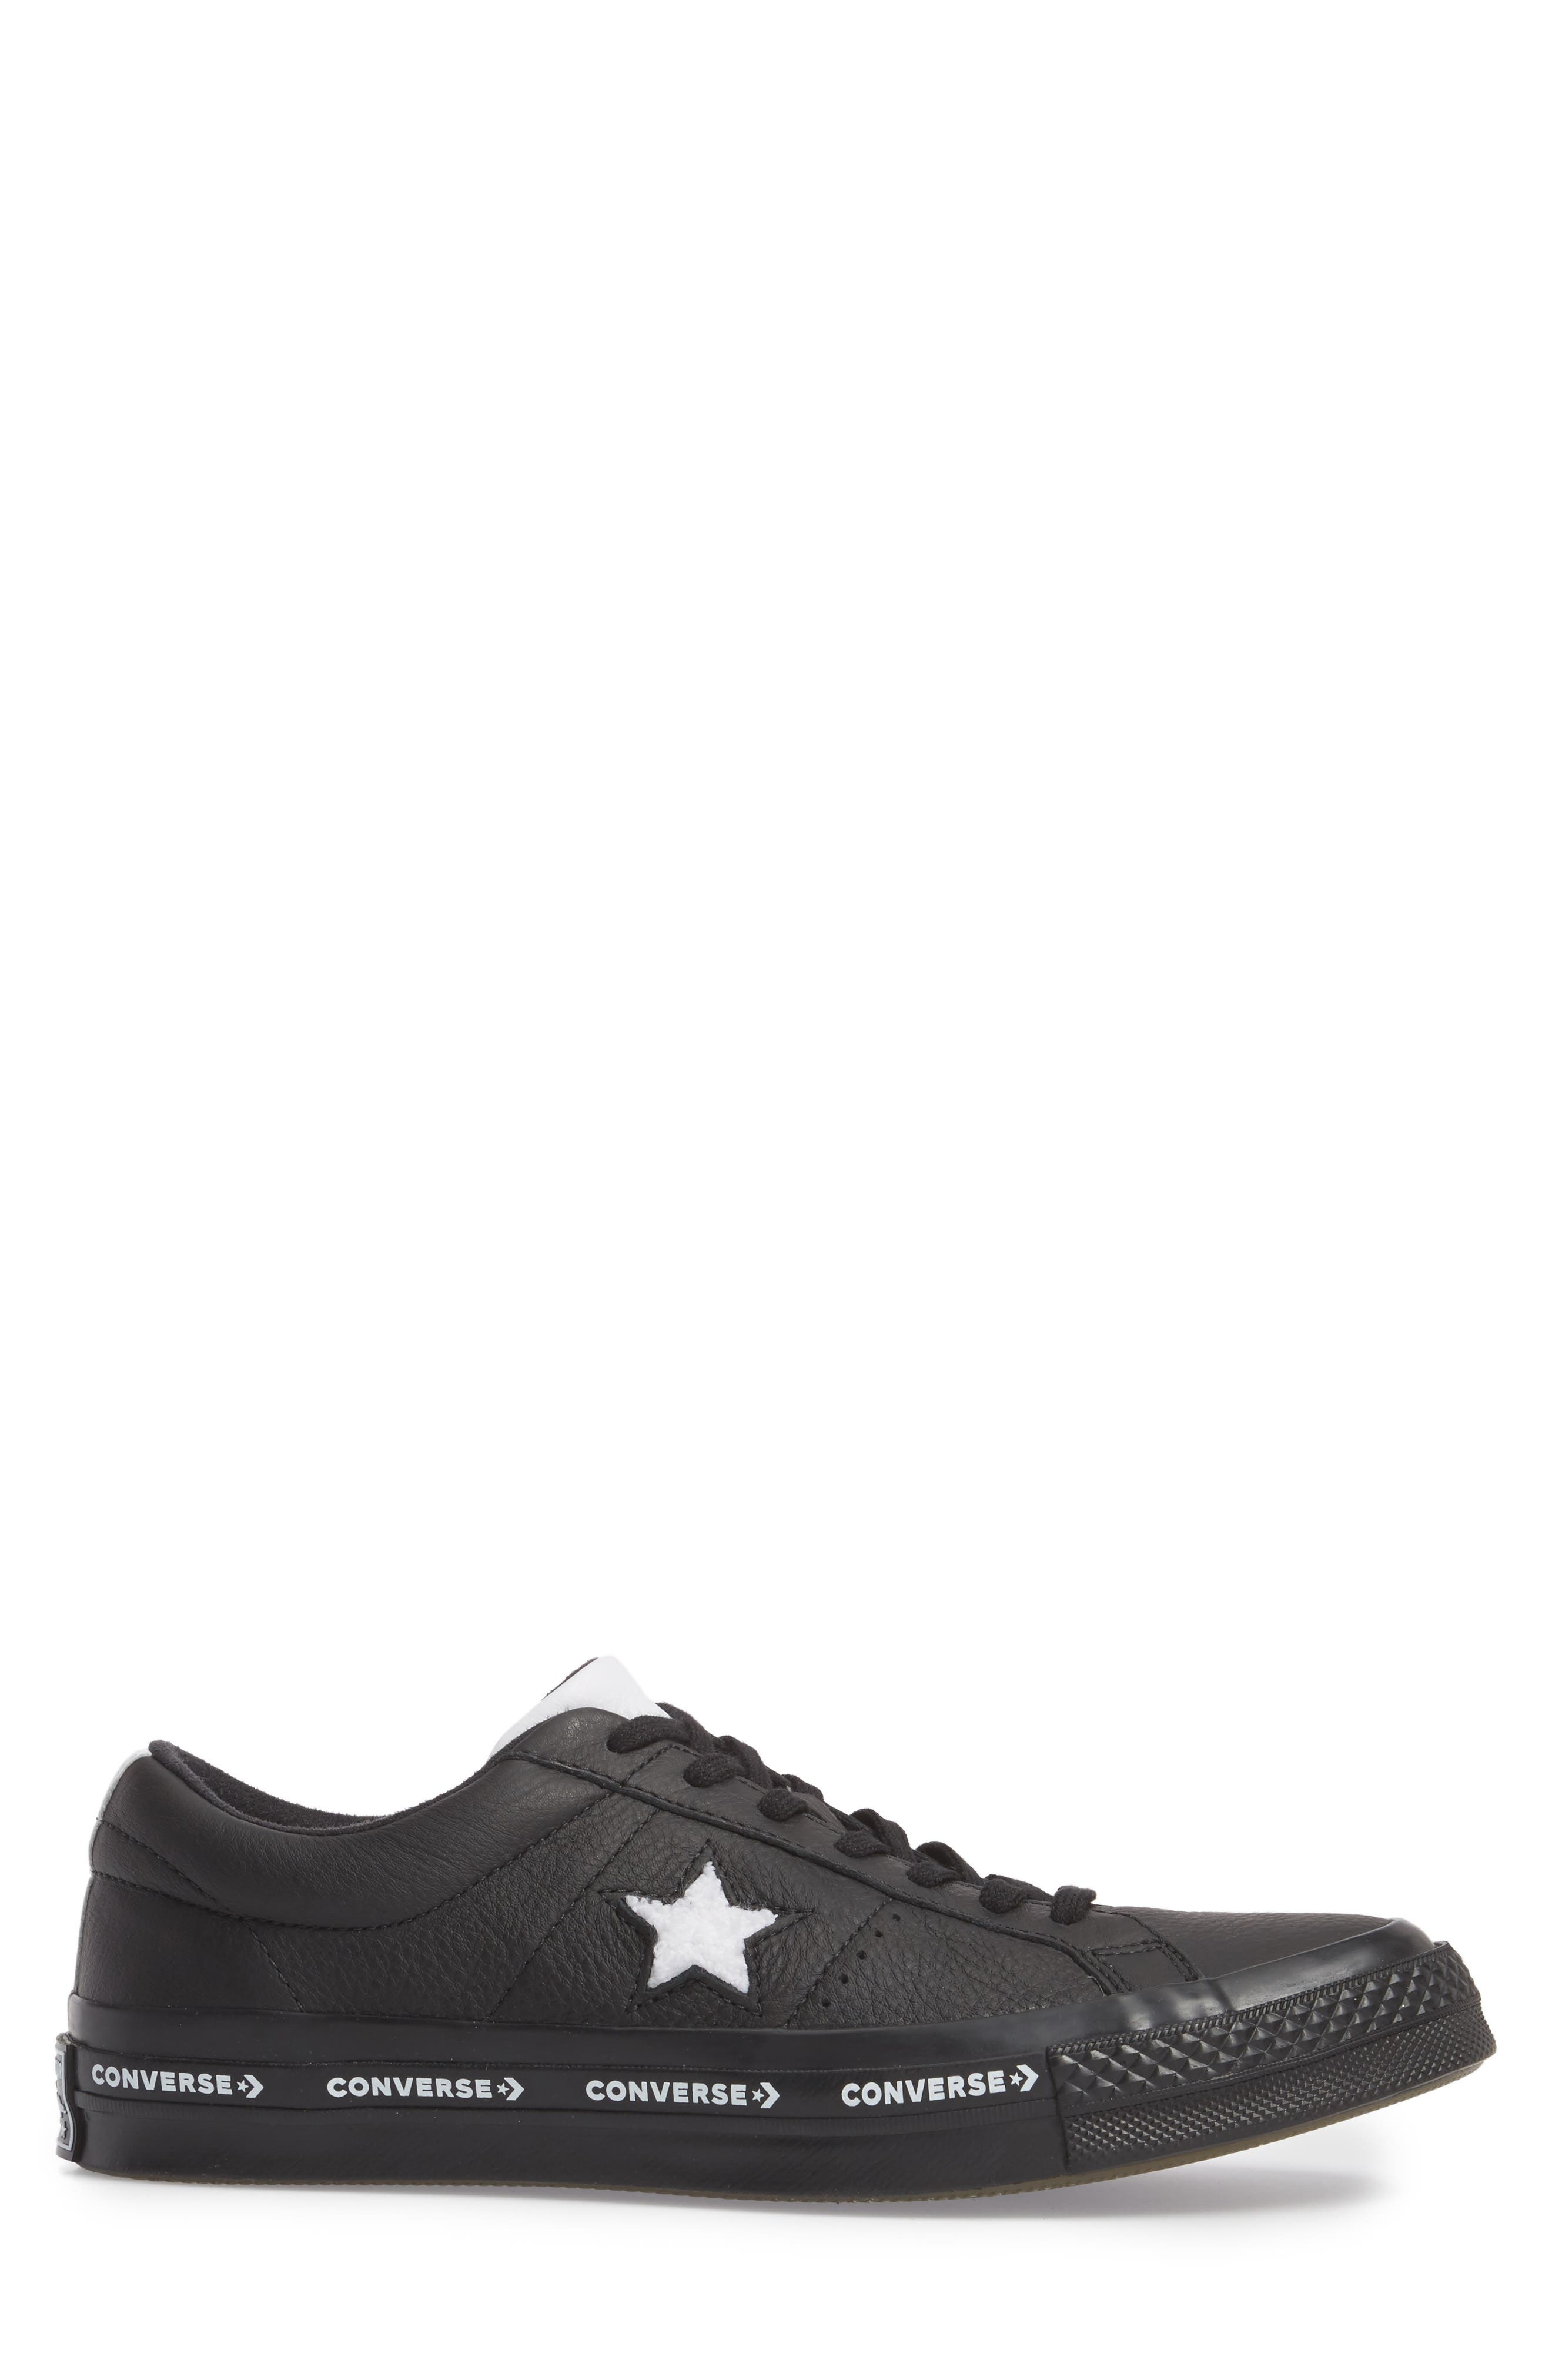 Chuck Taylor<sup>®</sup> One Star Pinstripe Sneaker,                             Alternate thumbnail 3, color,                             Black Leather